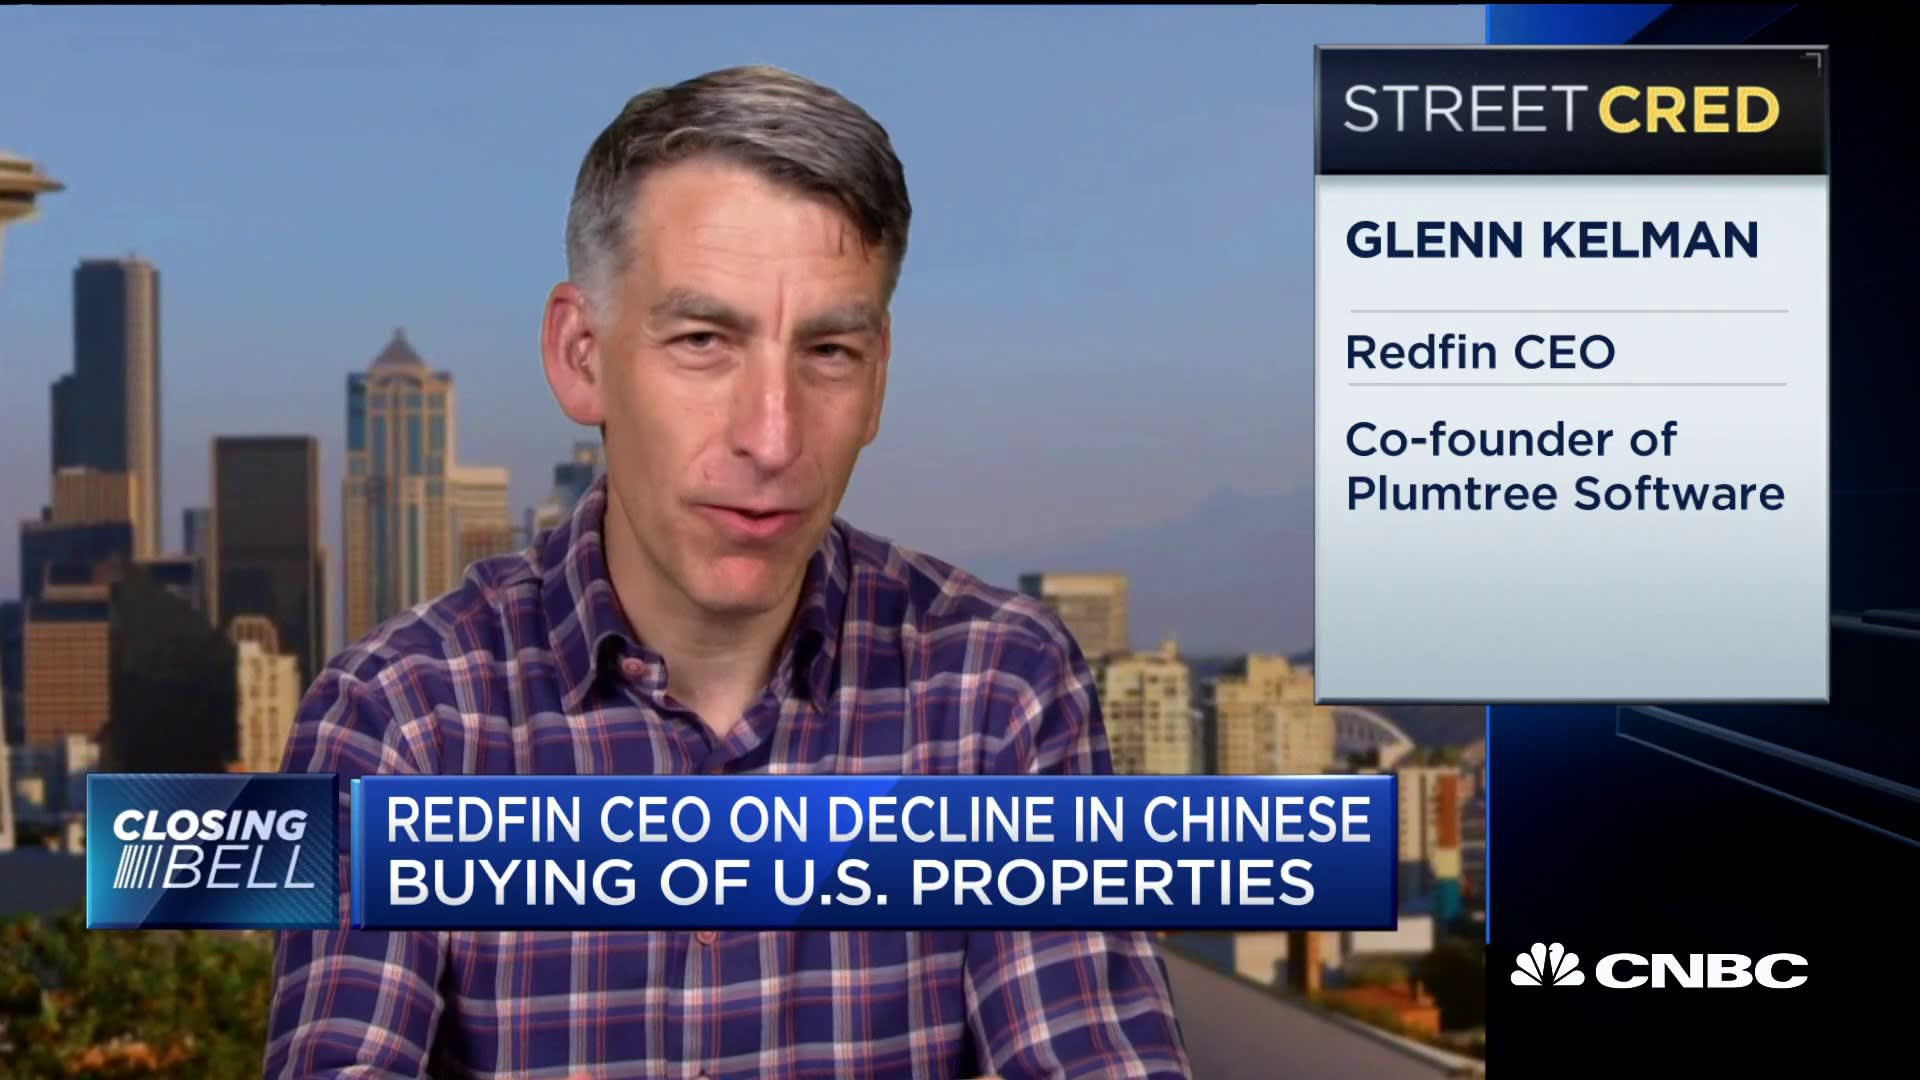 US housing market strong despite decline in Chinese demand, says Redfin CEO